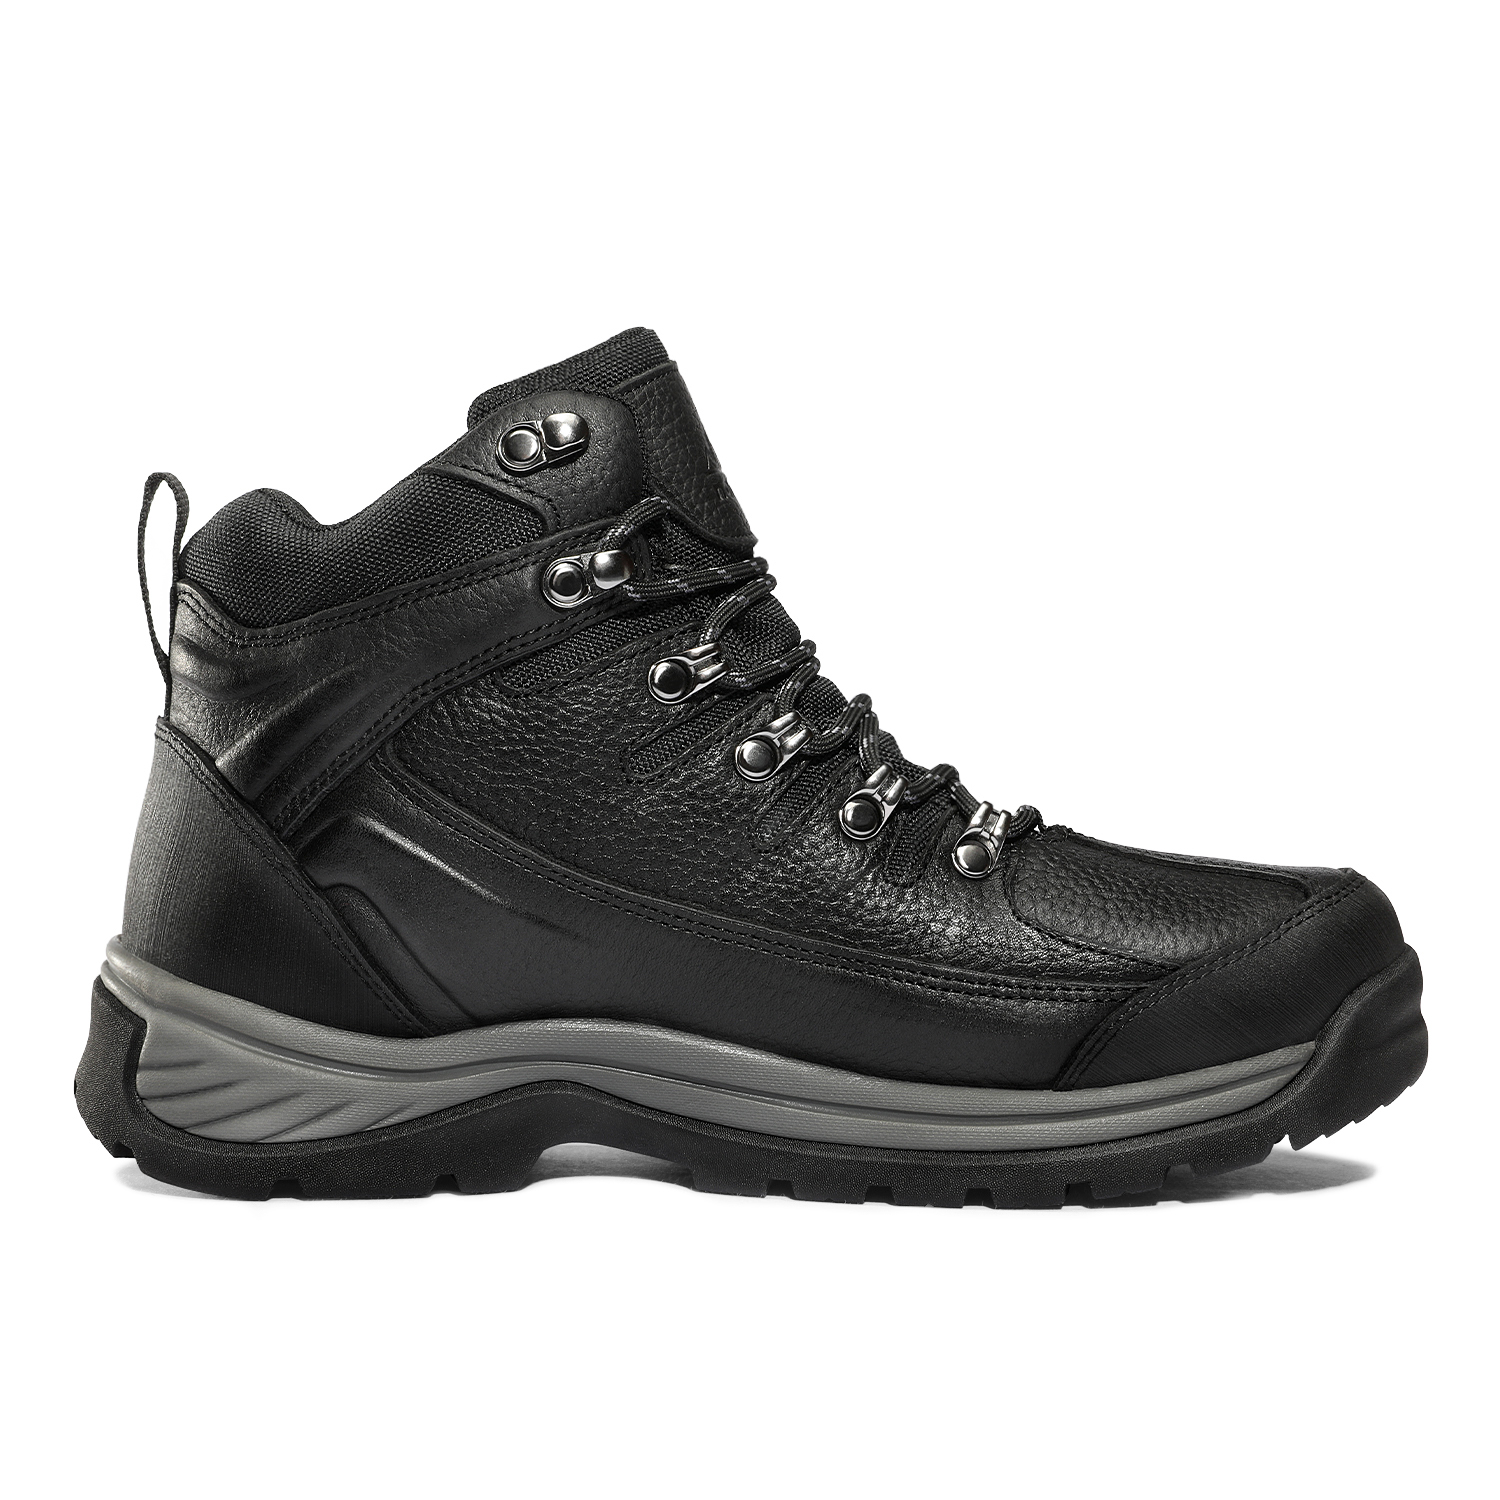 NORTIV-8-Men-039-s-Safety-Shoes-Steel-Toe-Work-Boots-Indestructible-Waterproof-Boots thumbnail 3